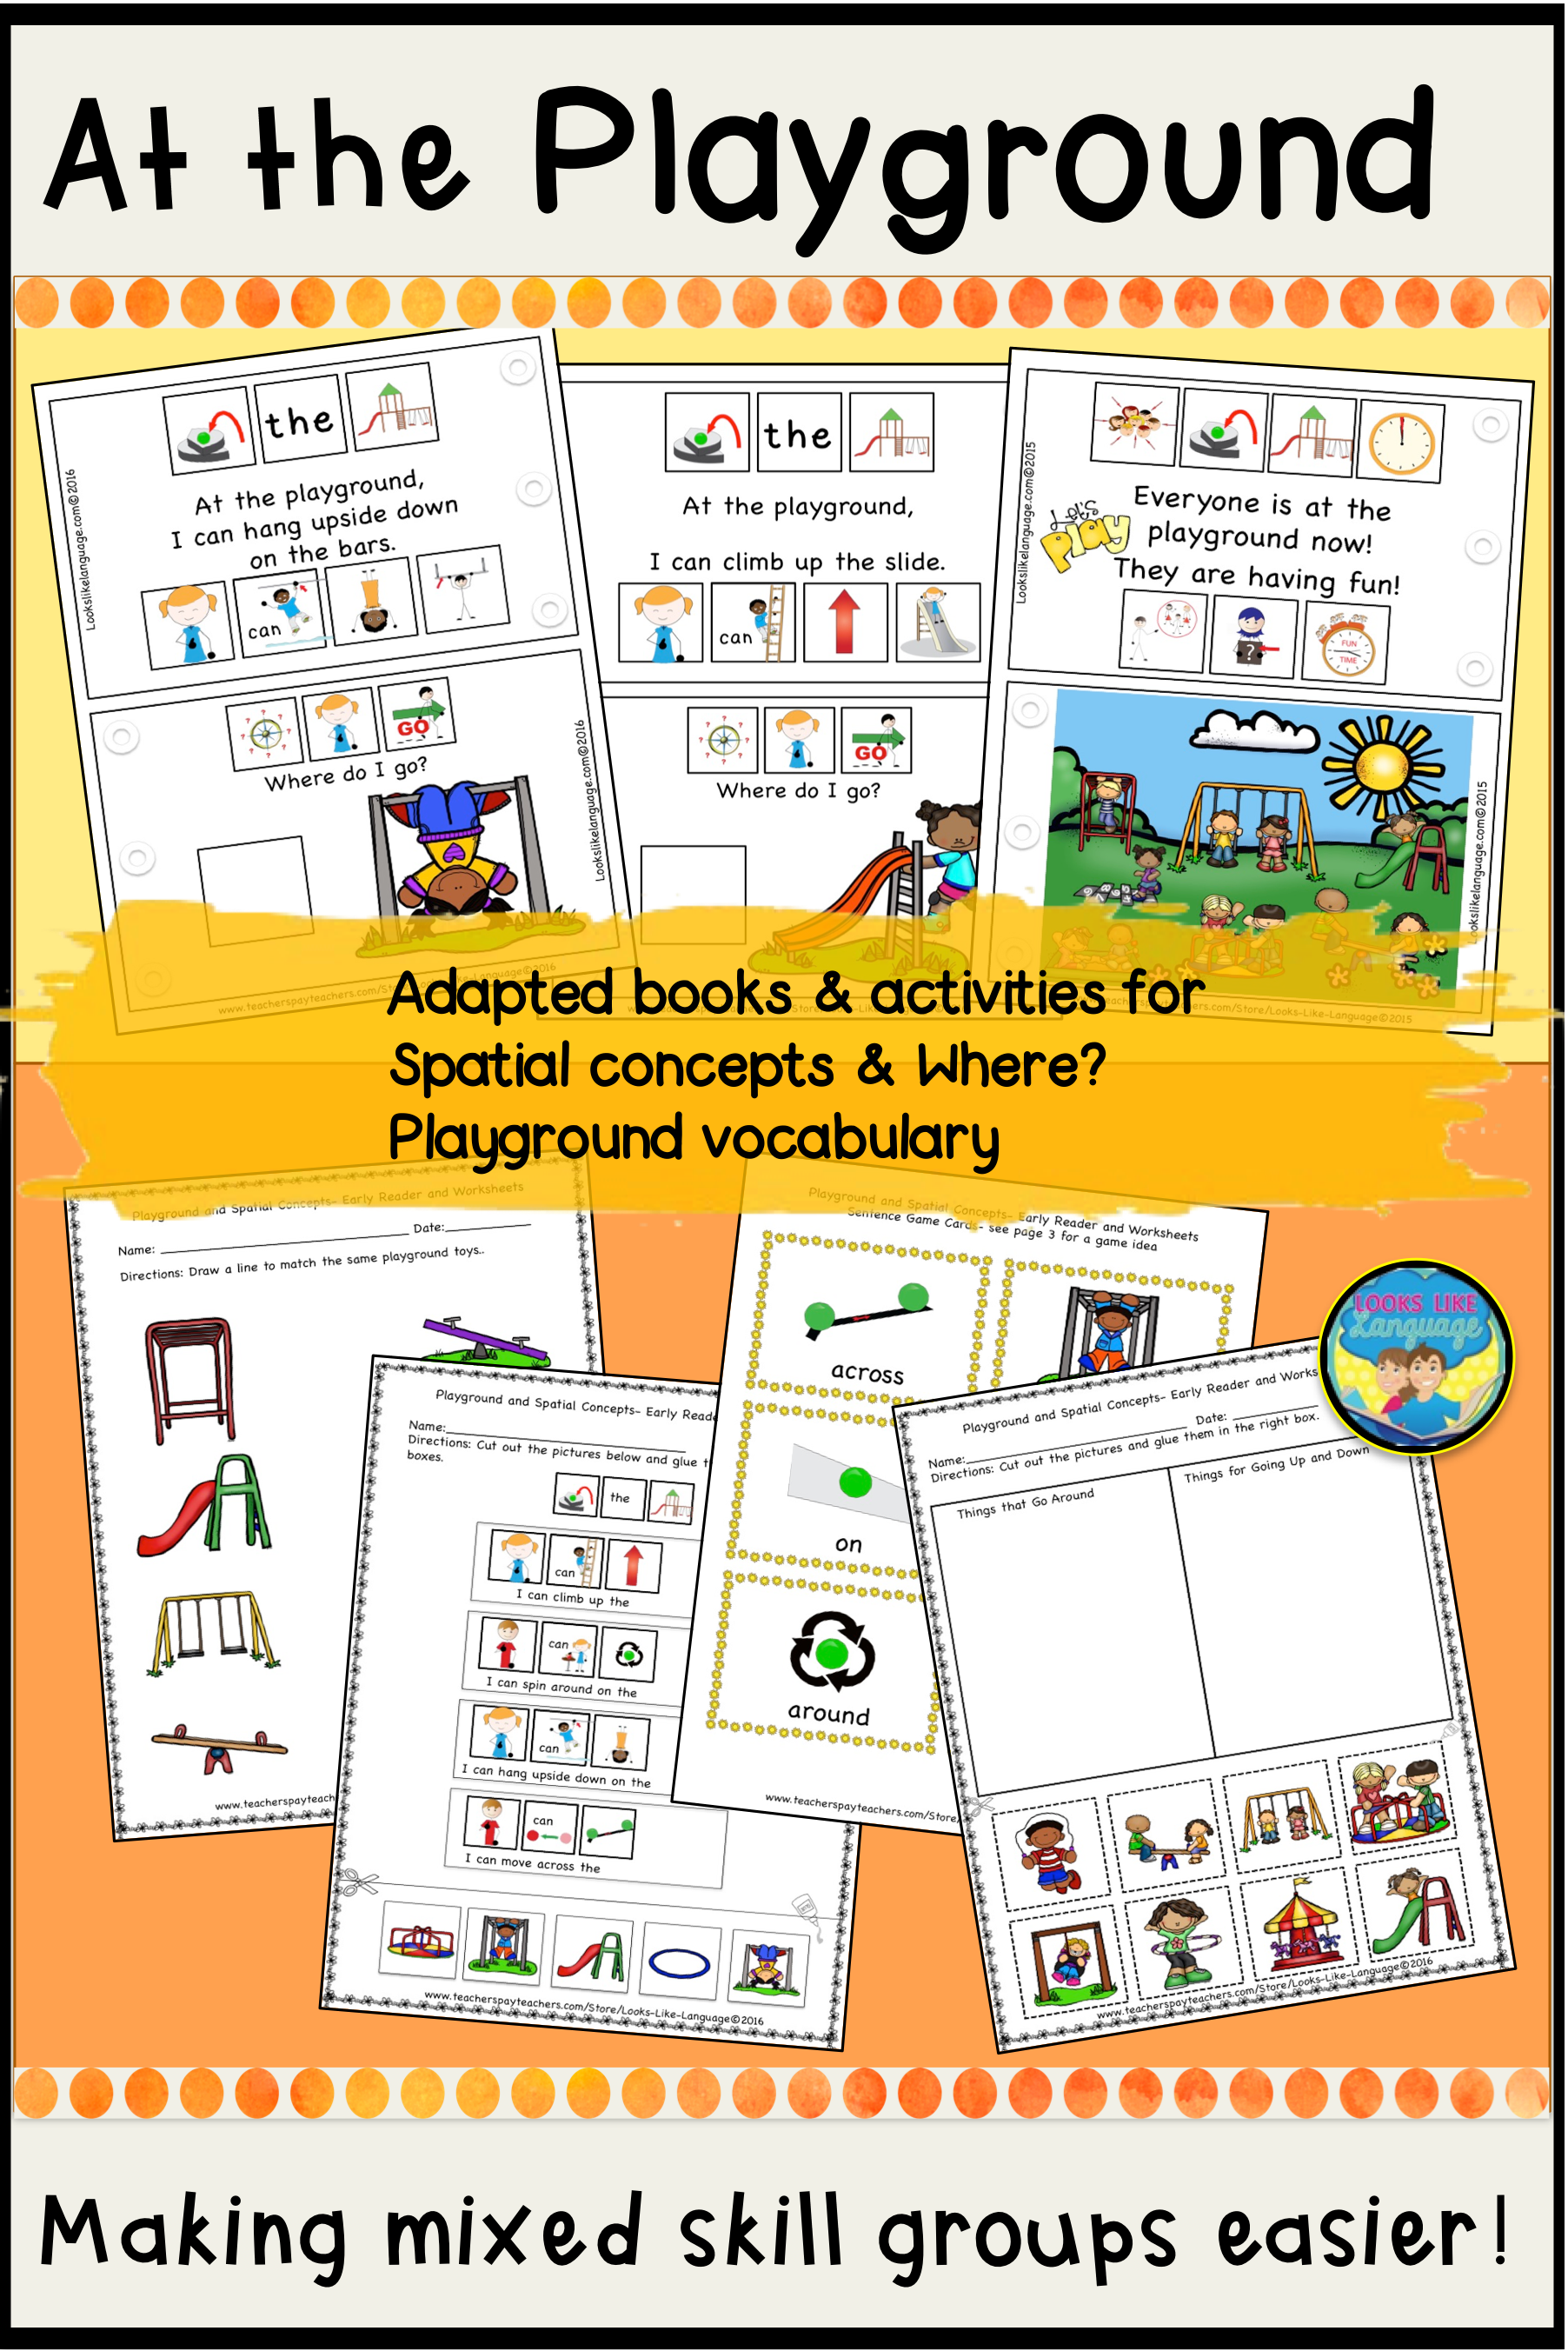 This Adapted Picture Book For Where And Spatial Concepts Has Worksheets And Activities To Build Communica Playground Activities Spatial Concepts Adapted Books [ 2704 x 1804 Pixel ]